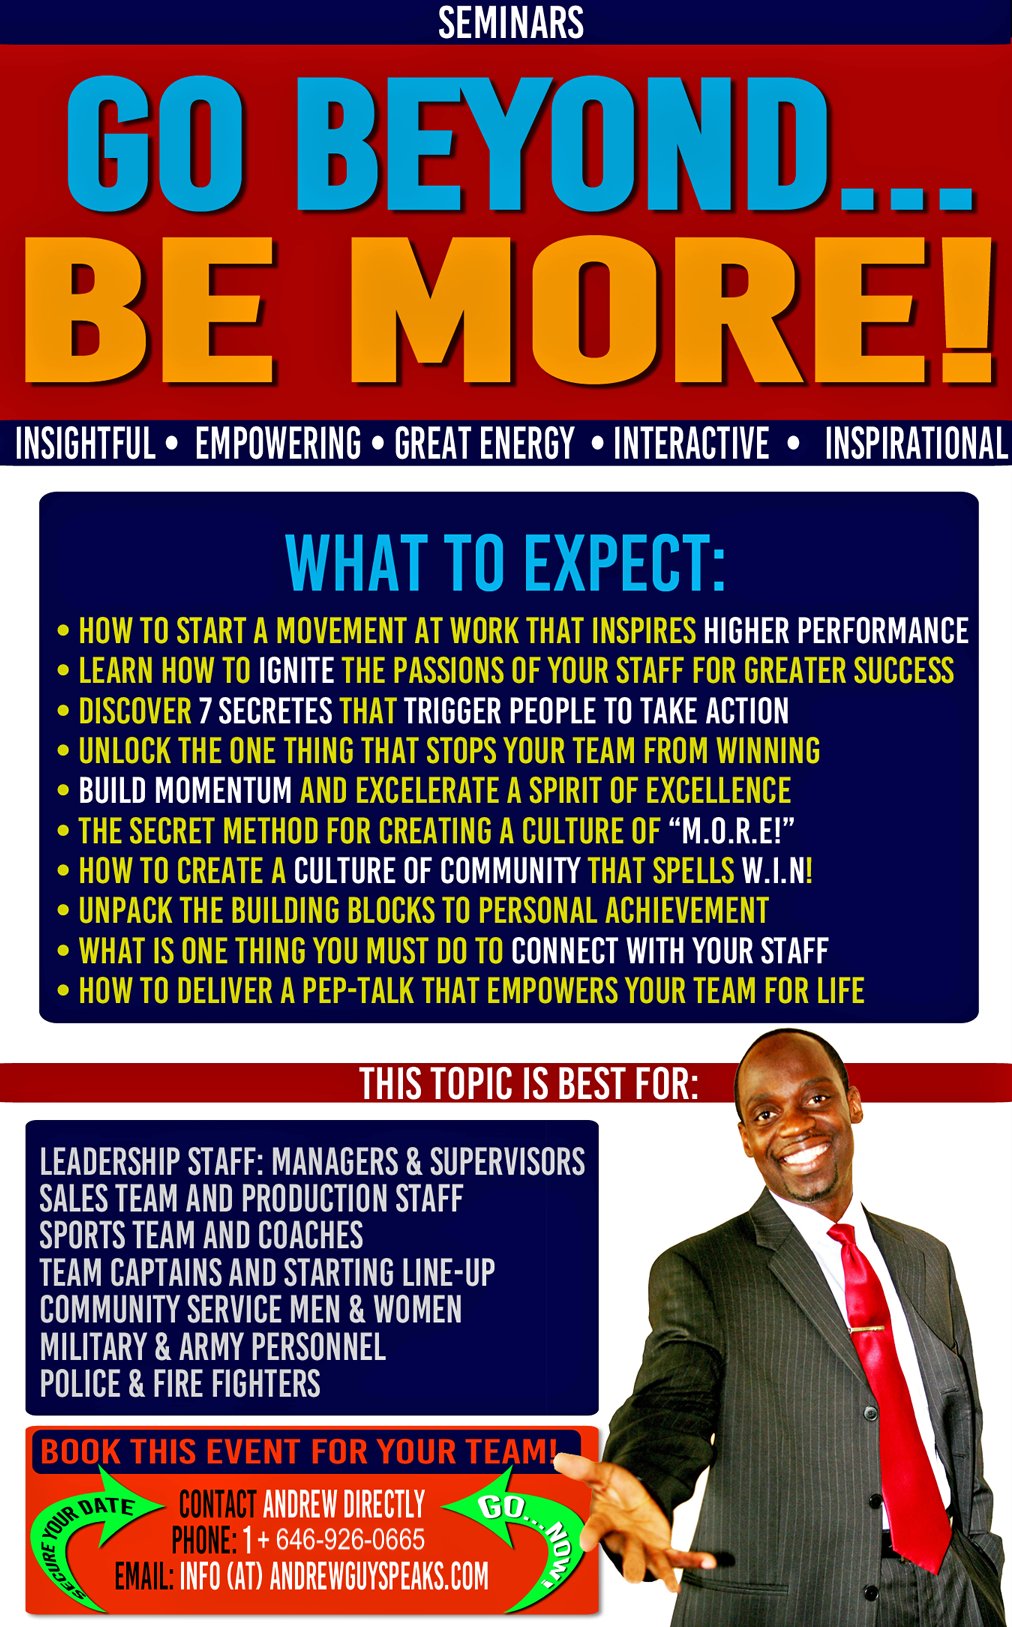 BE MORE, corporate speaker, andrewguy, conference speaker